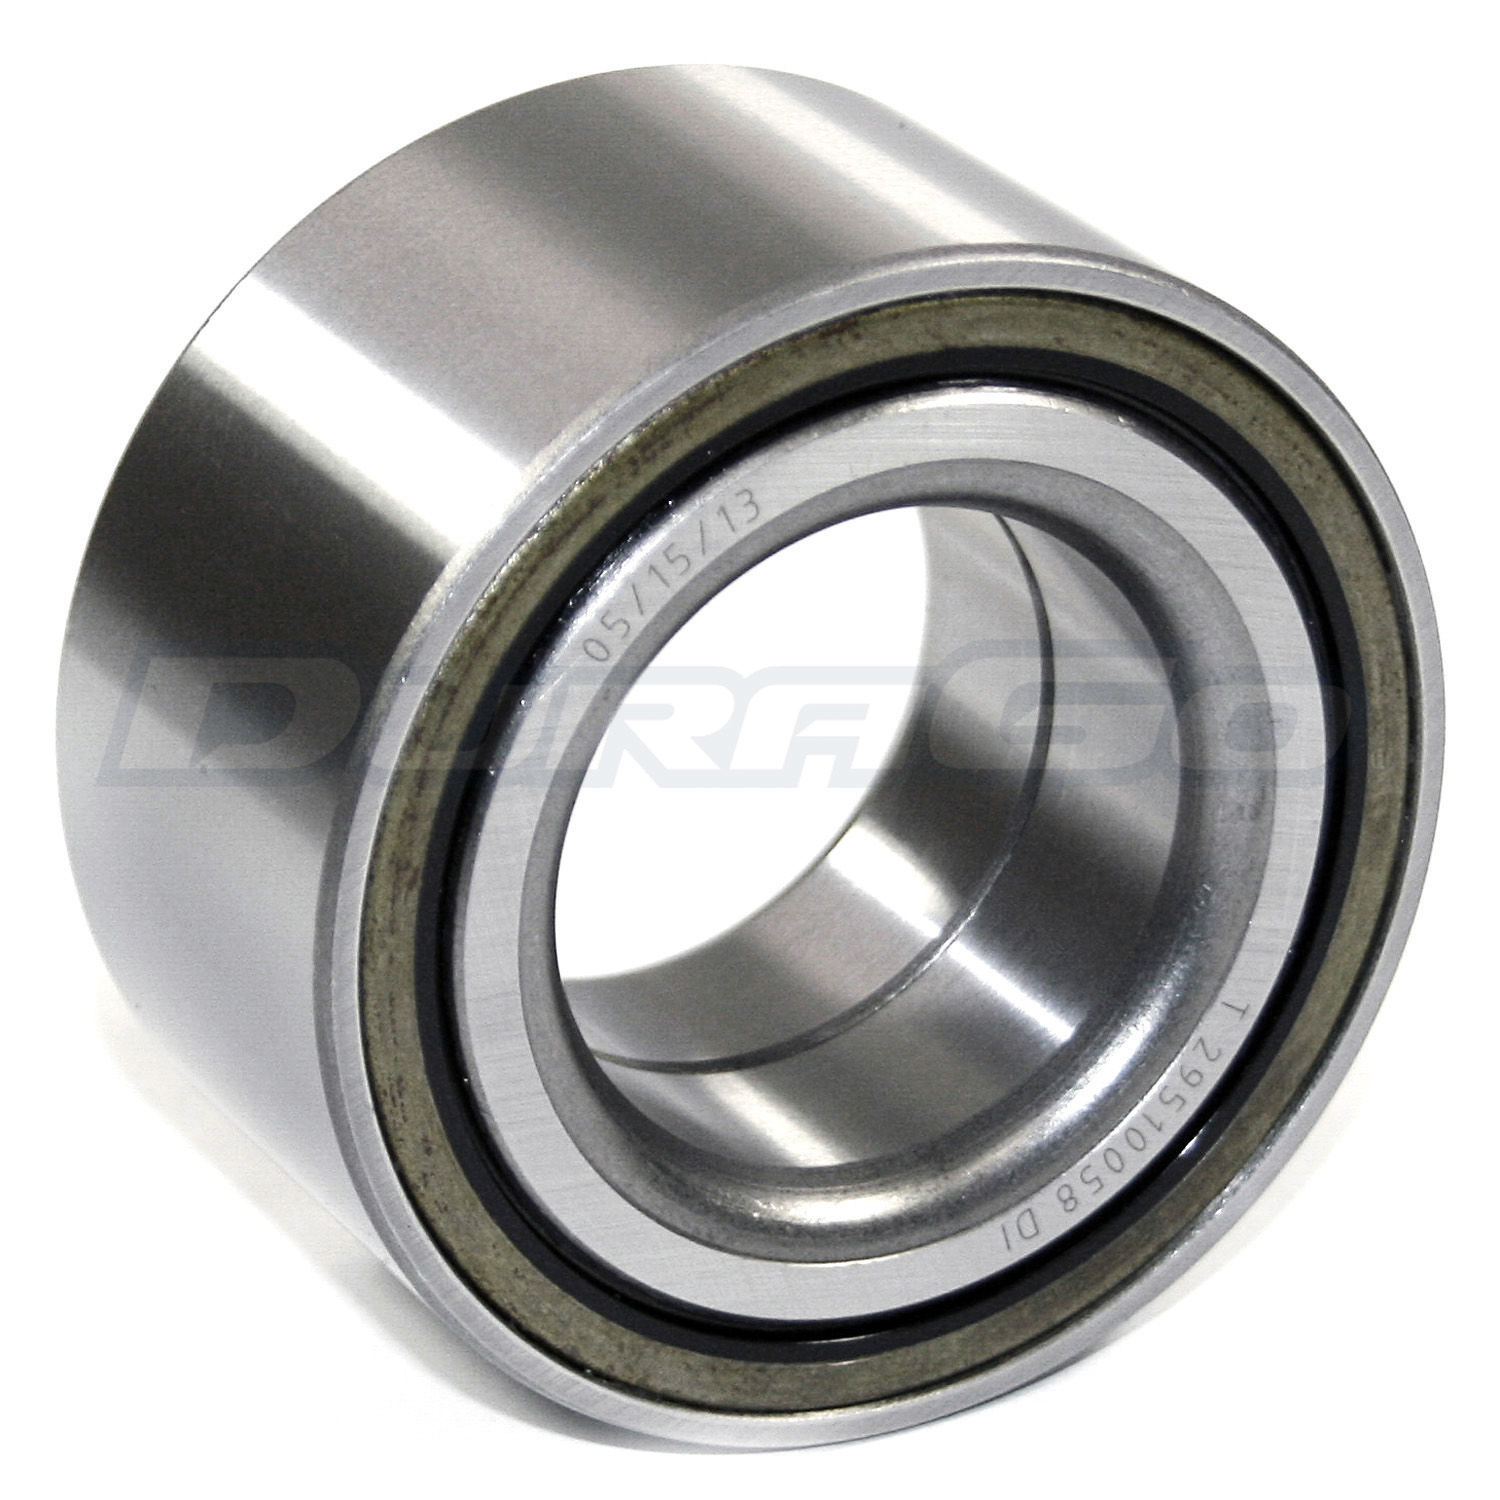 DURAGO - Wheel Bearing - D48 295-10058